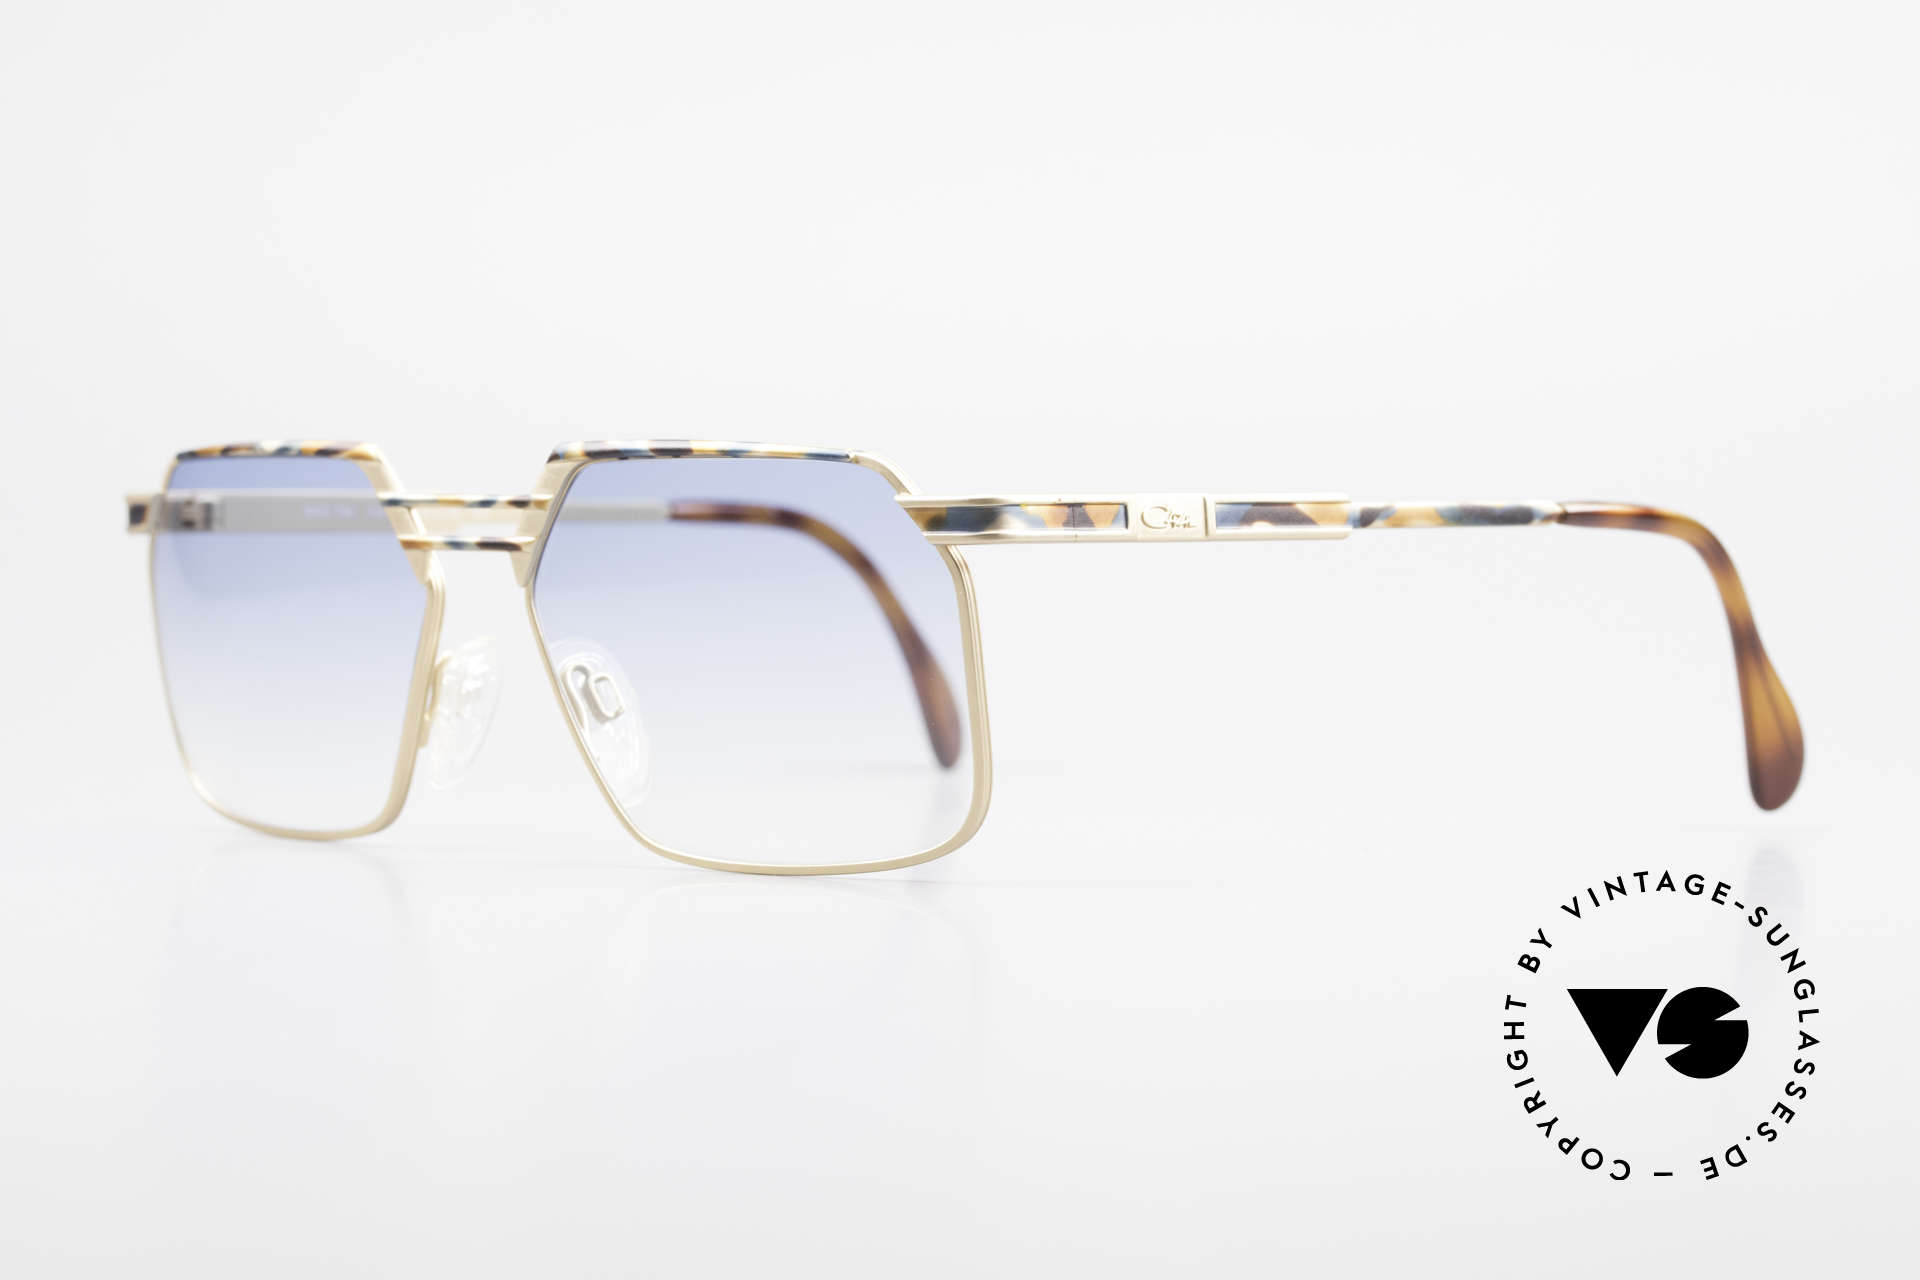 Cazal 760 True Vintage Men's Sunglasses, stable metal frame with very elegant coloring, Made for Men